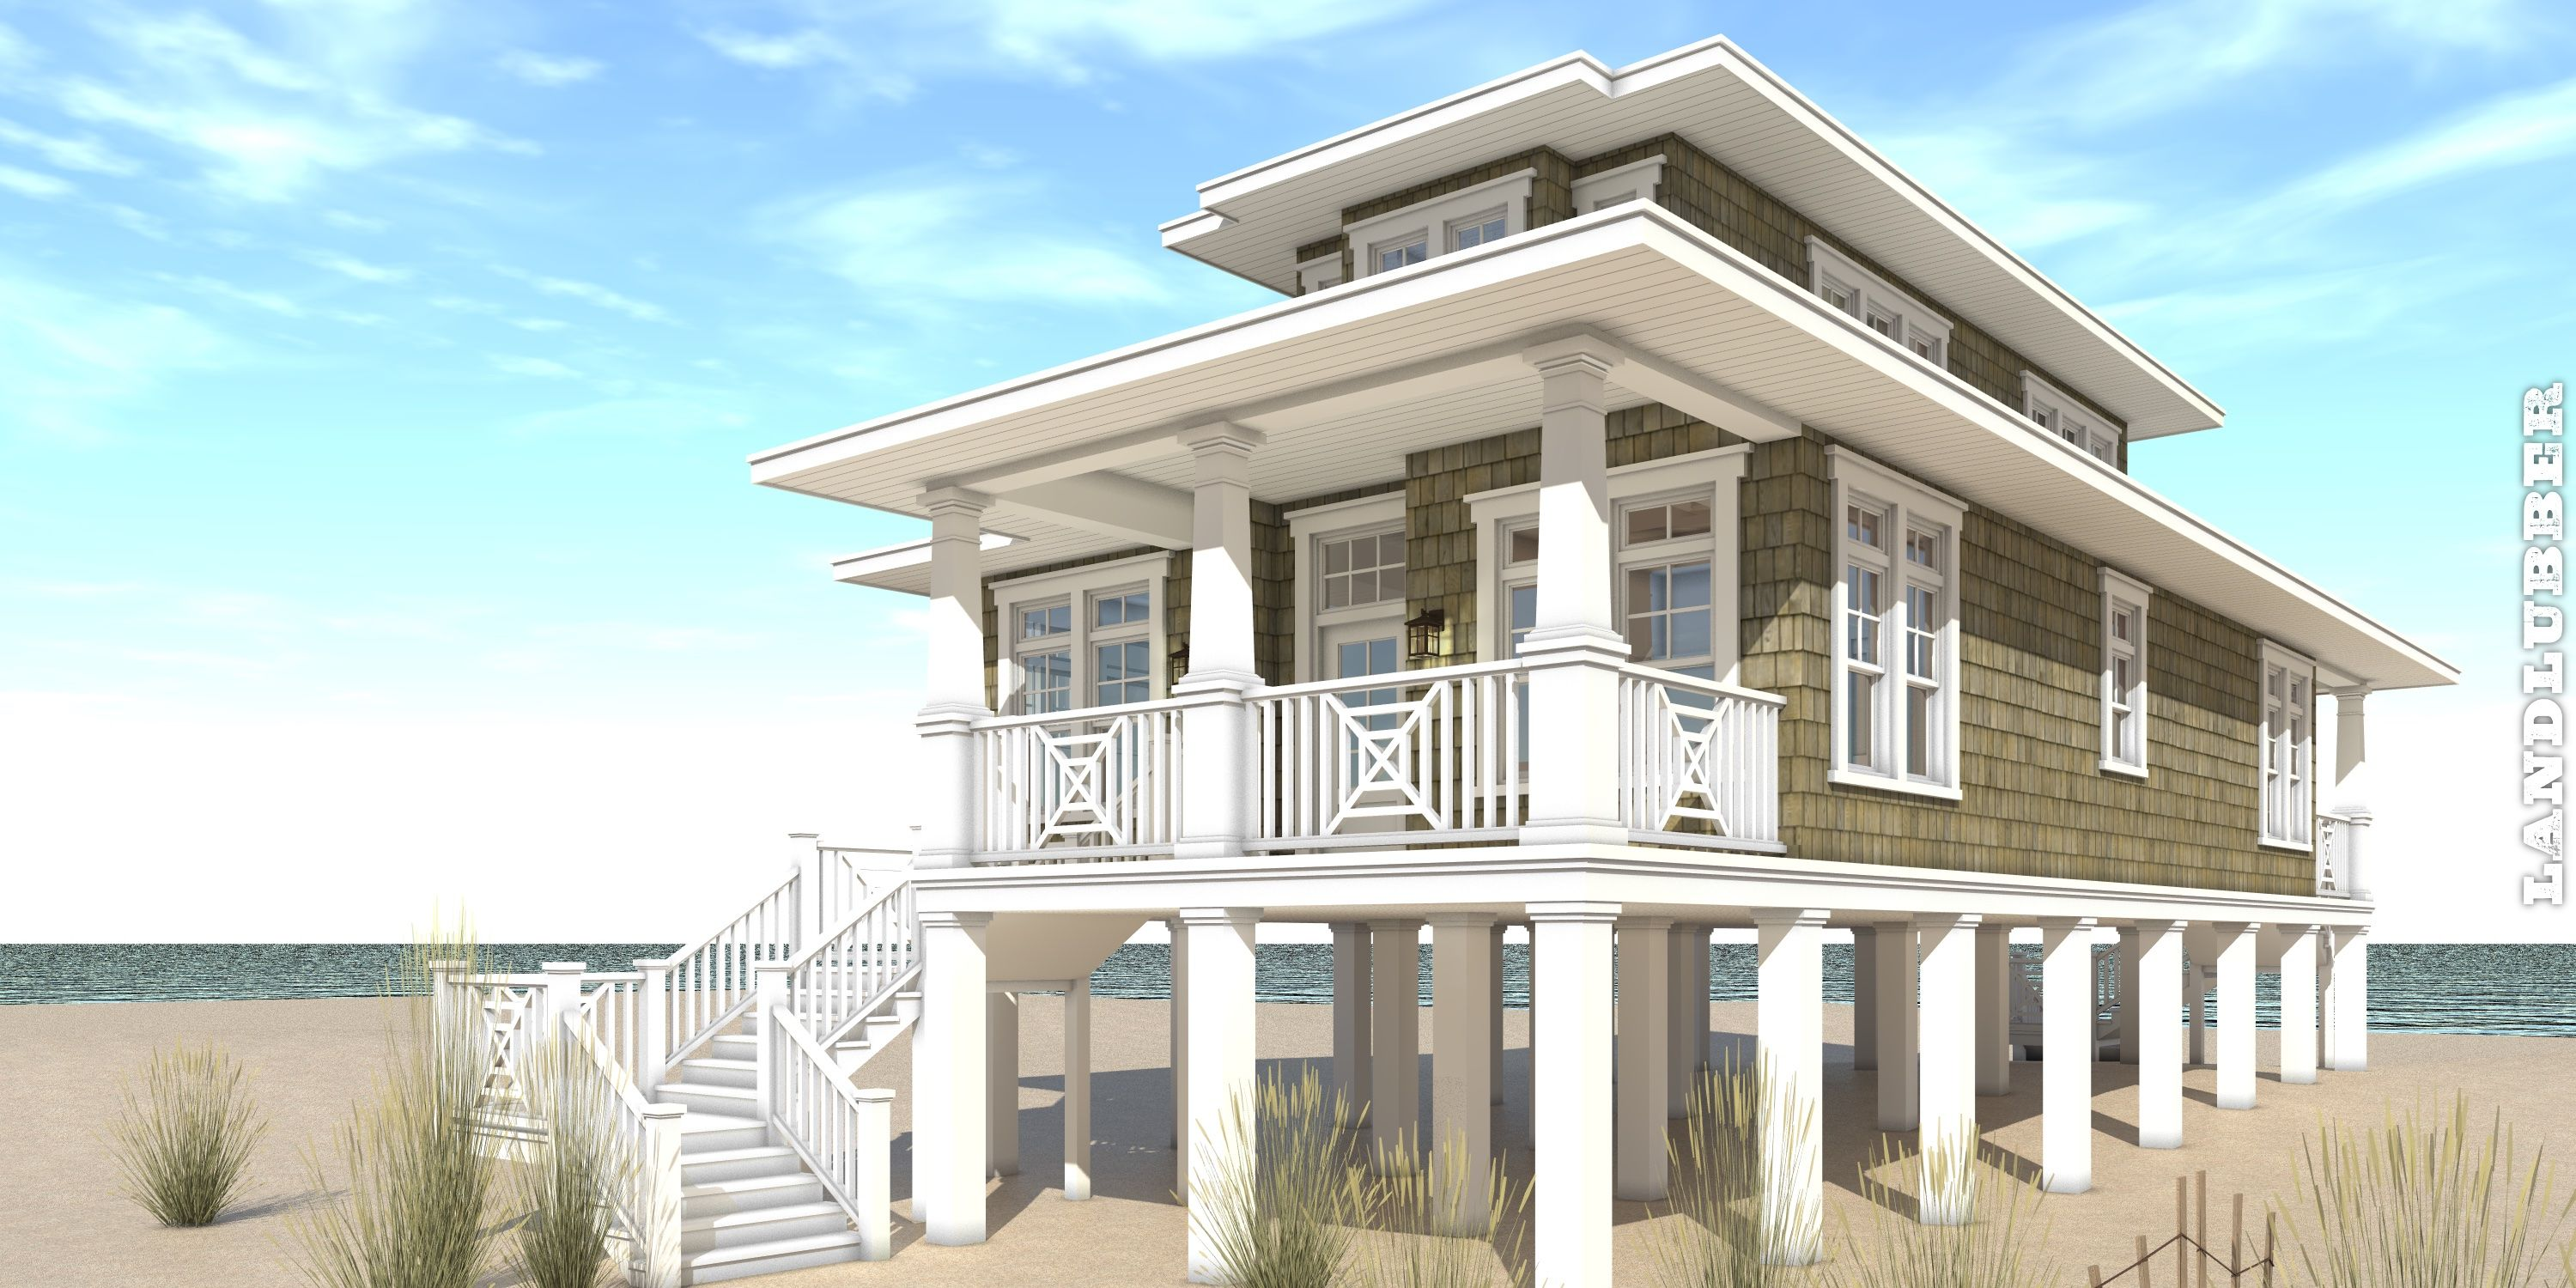 3 Bedroom Beach House Plan Tyree House Plans Beach House Flooring Beach House Design Beach House Floor Plans